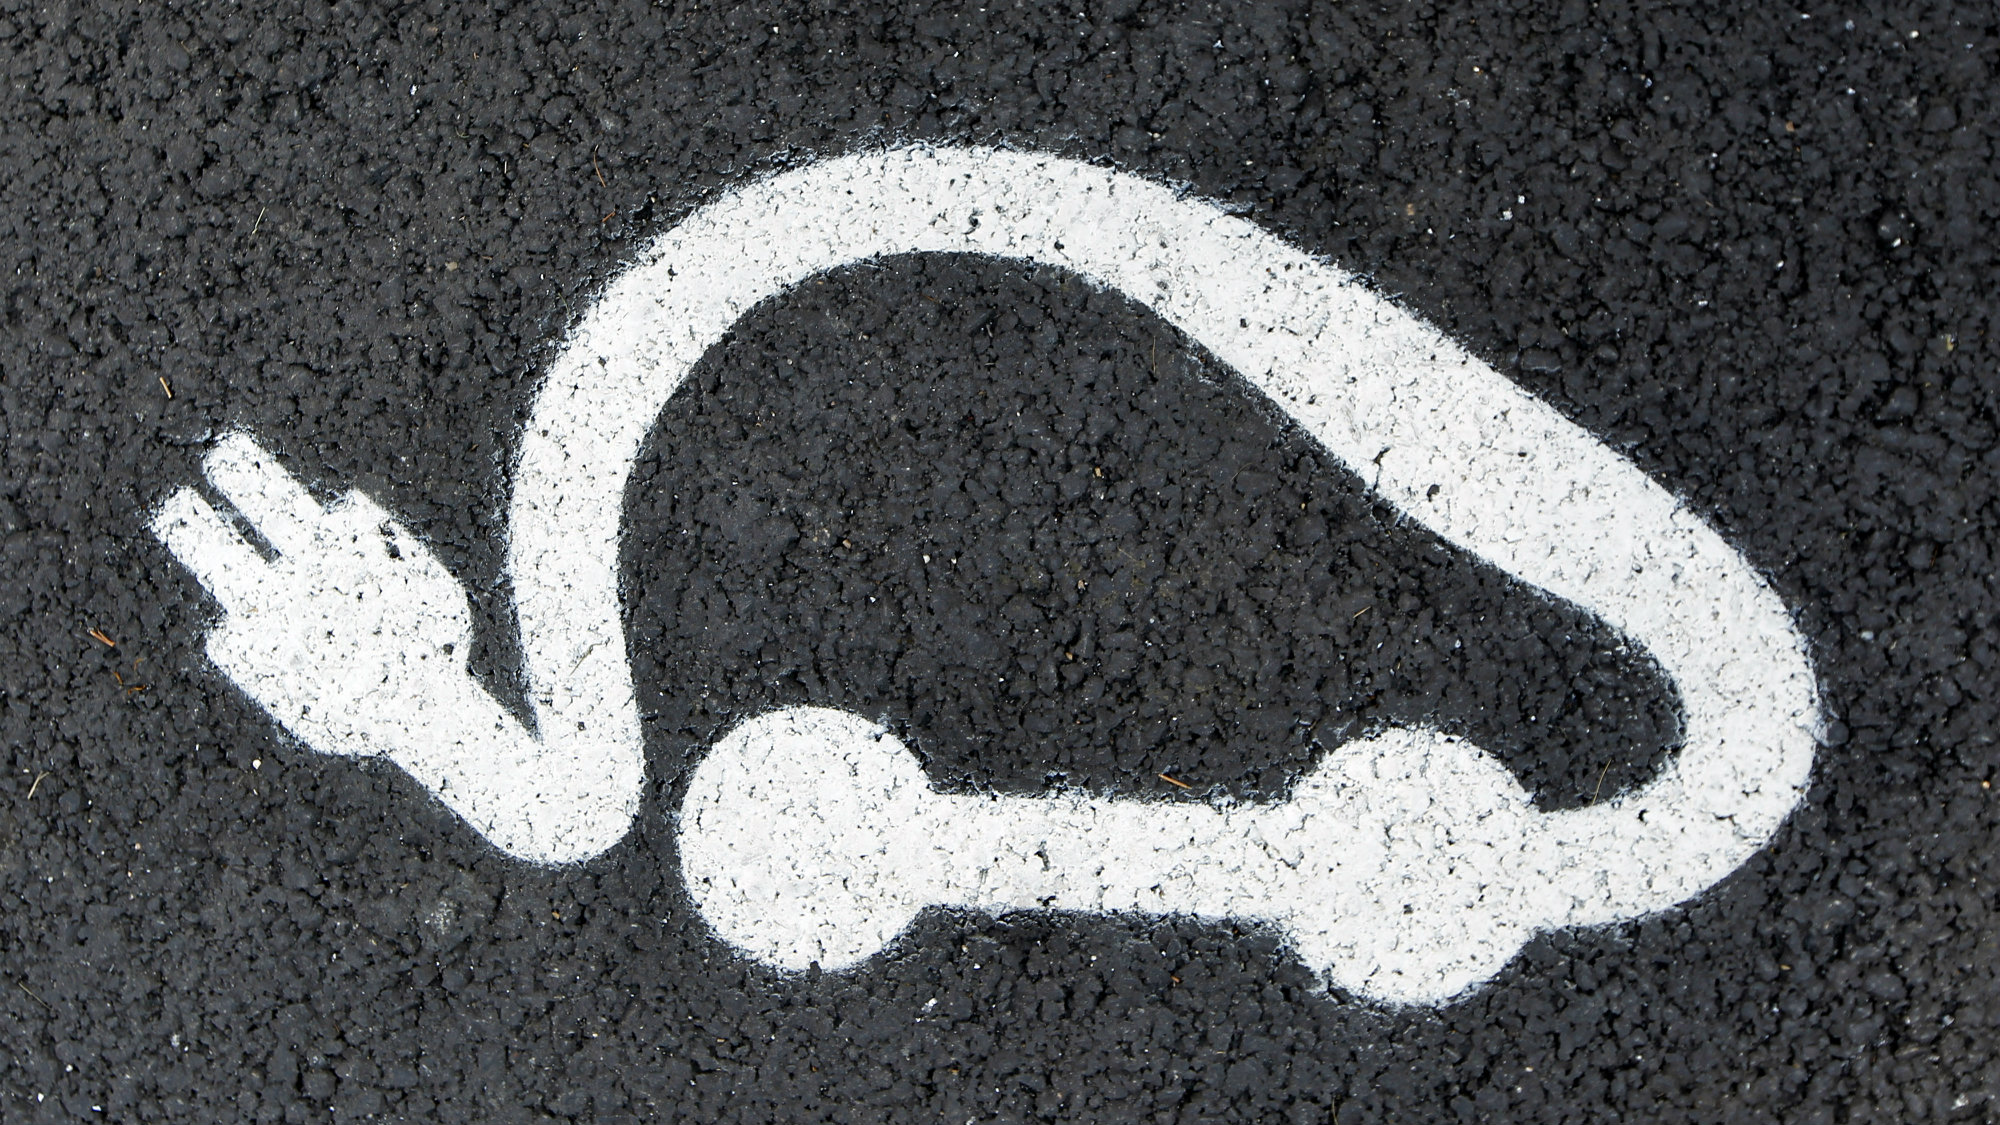 The logo of the Paris Autolib' electric car is painted on the road.